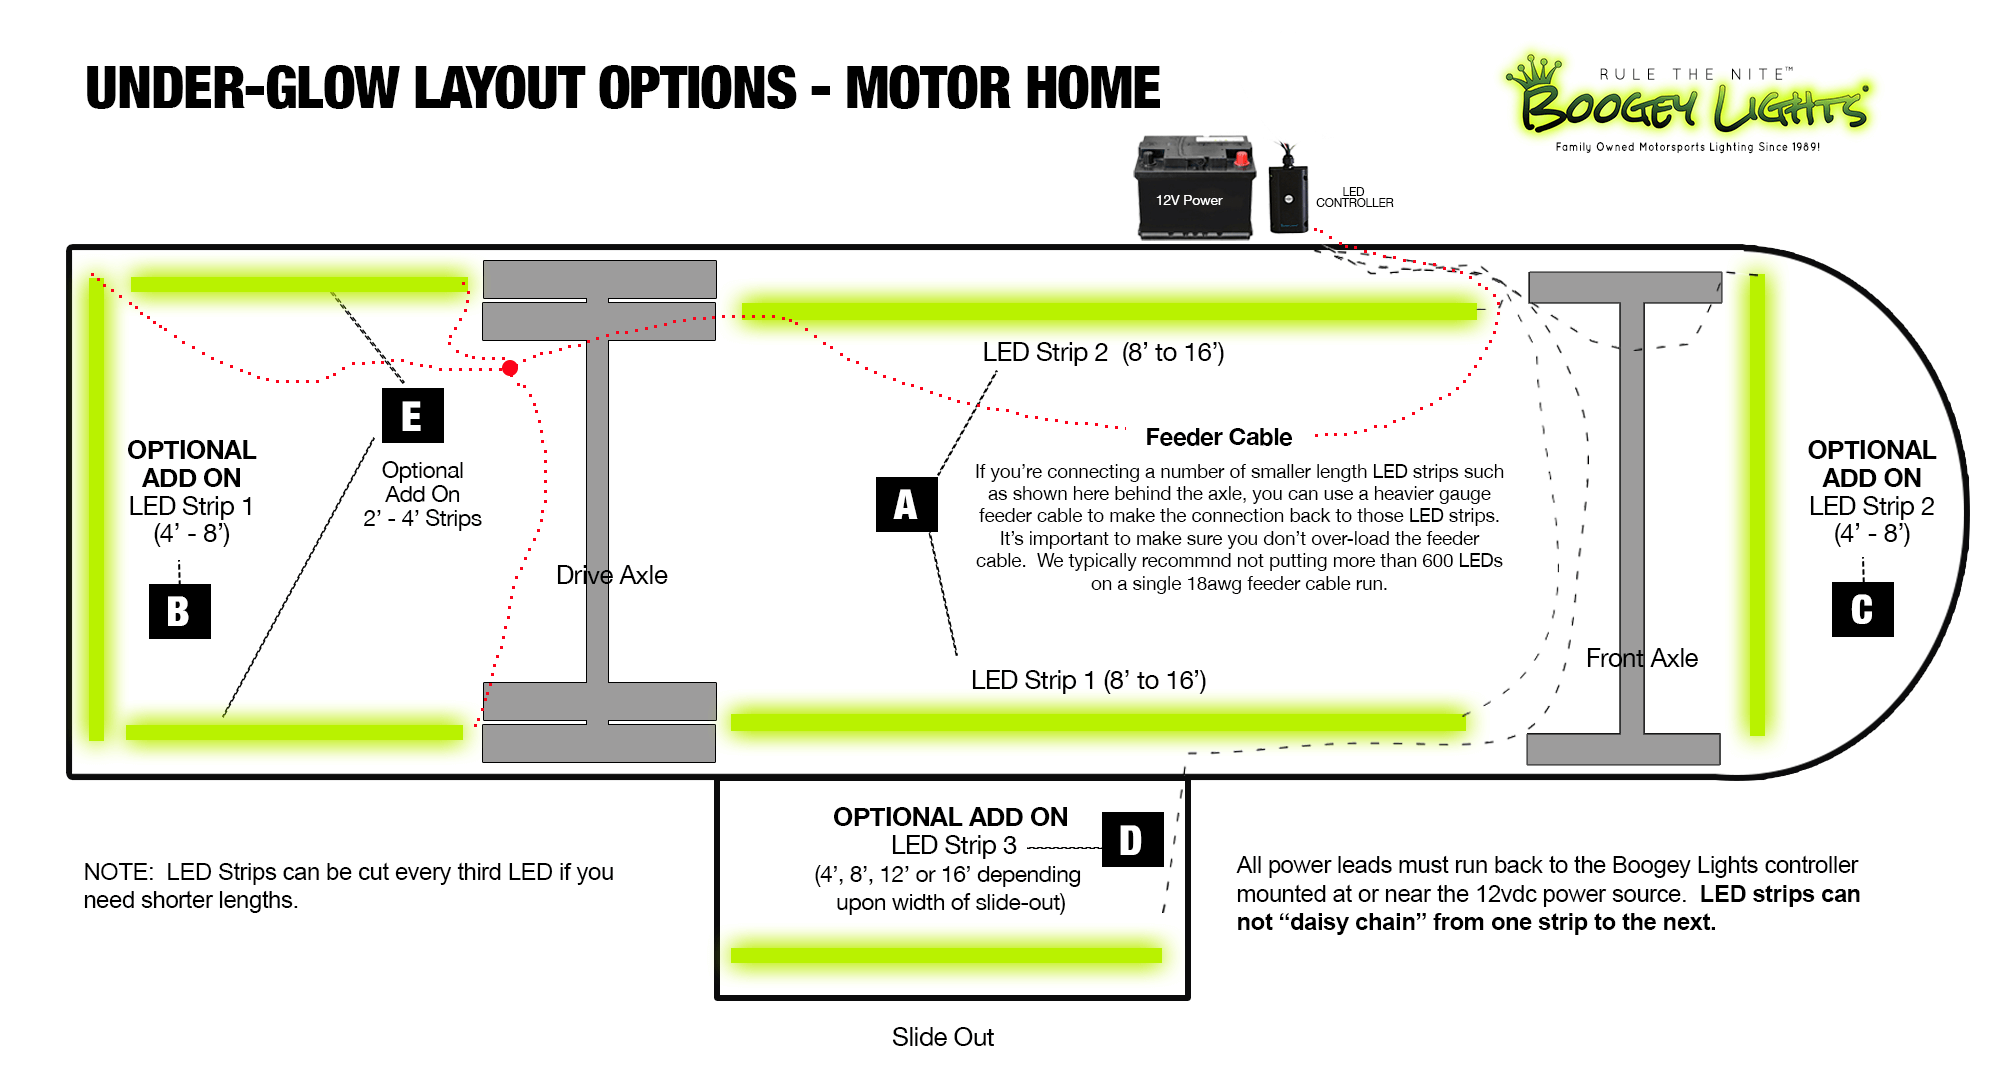 Motor Home Placement Options